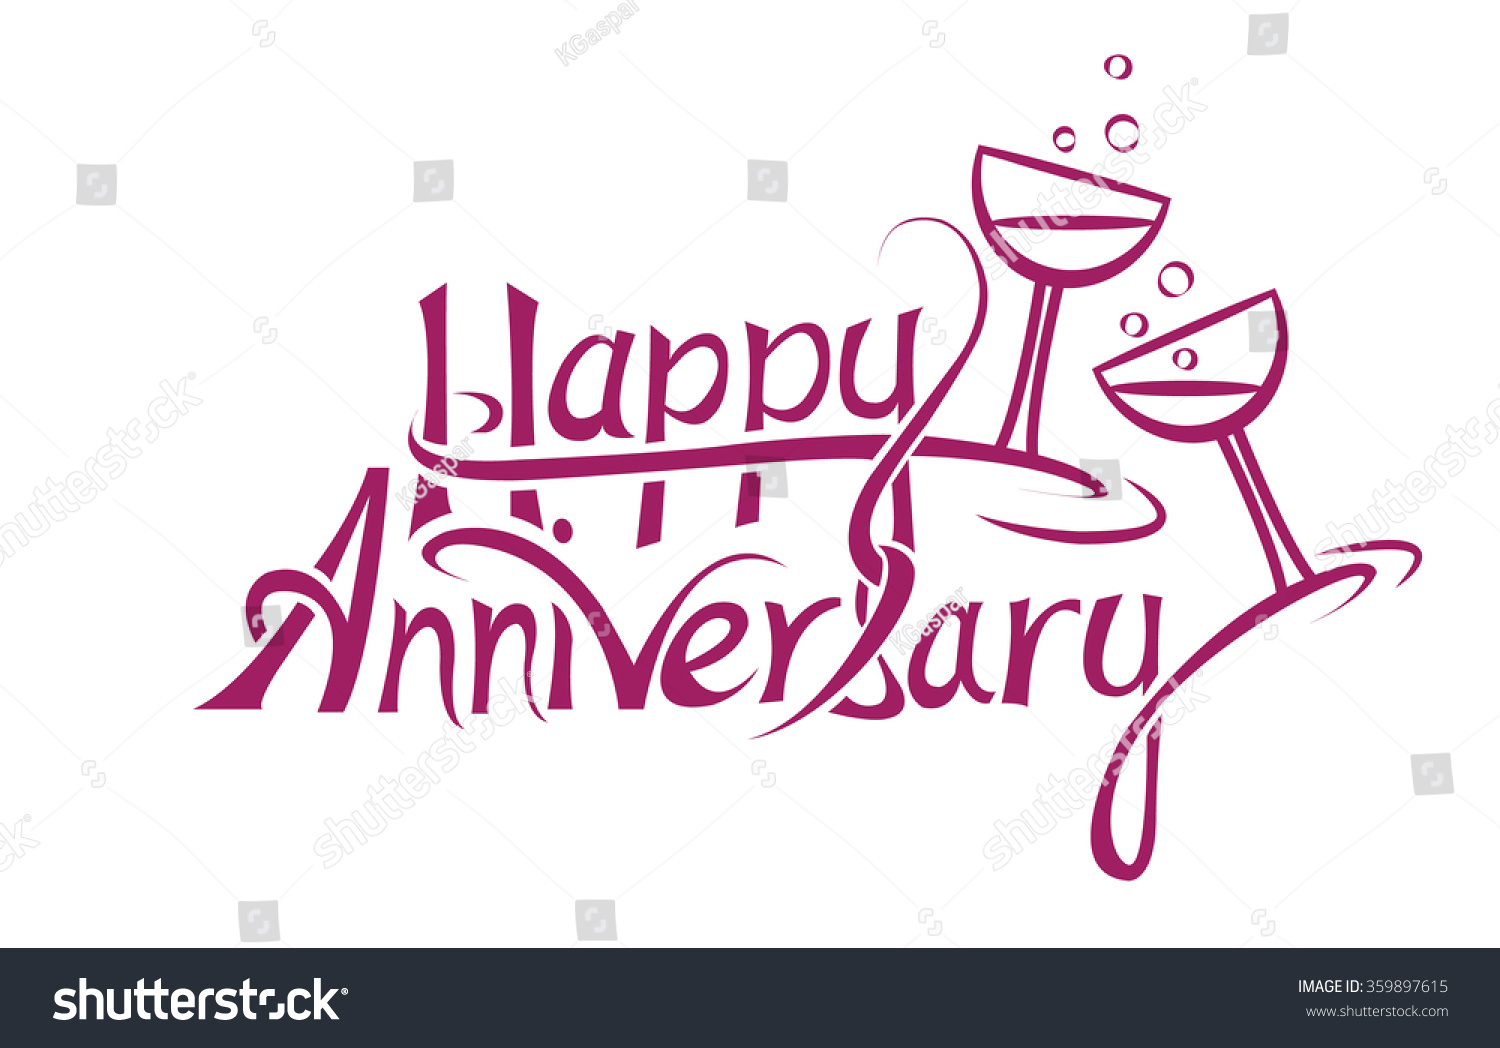 happy anniversary sign letter design stock vector 359897615 shutterstock. Black Bedroom Furniture Sets. Home Design Ideas